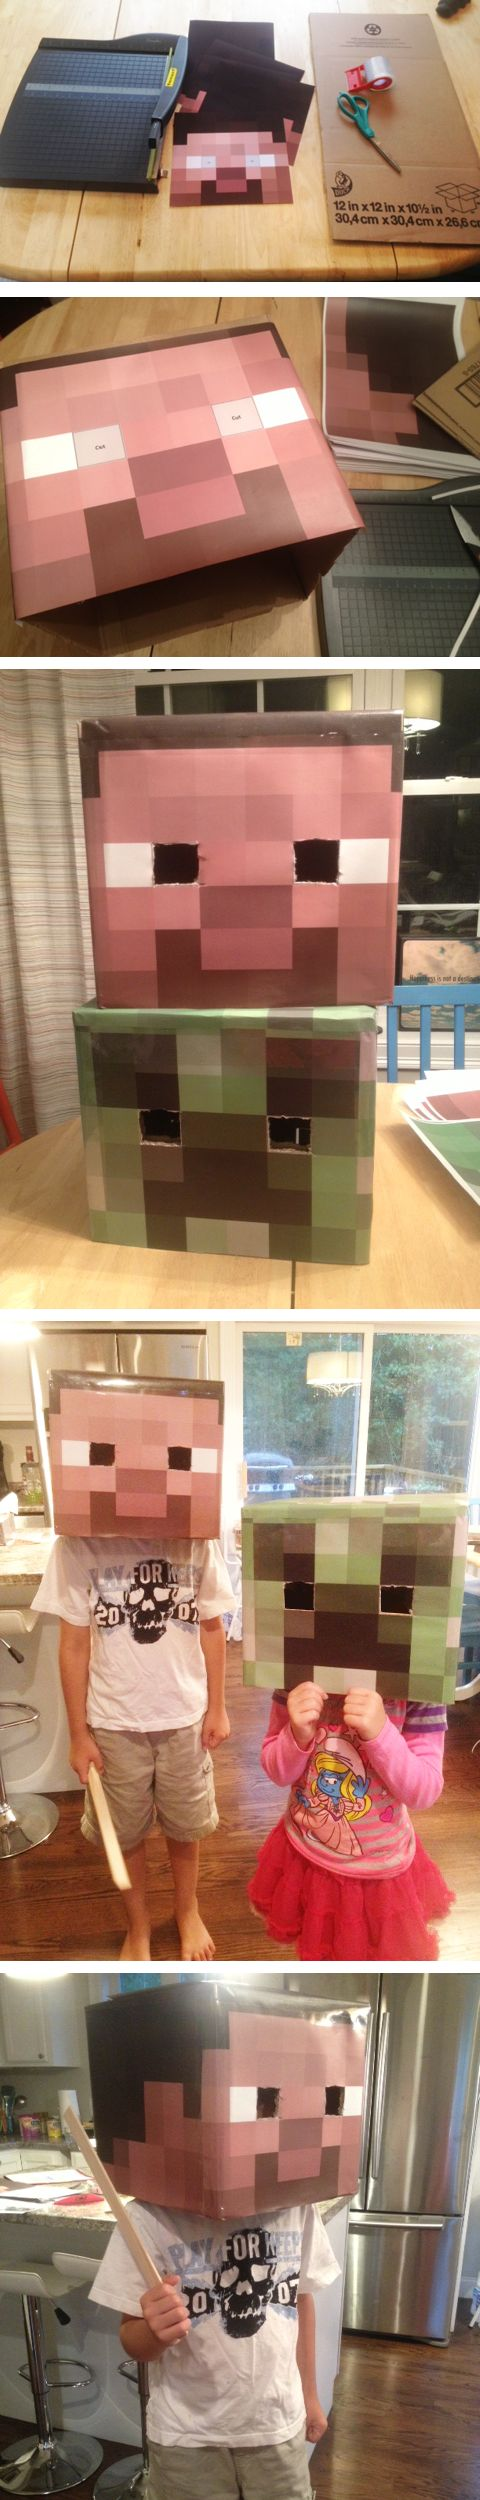 Update October 14, 2013: Jane.com has Minecraft Wall Name Decals today for $9.99! I just picked one up for Sebastian's room :)   Pin this Minecraft costume on Pinterest! I don't know about yo...